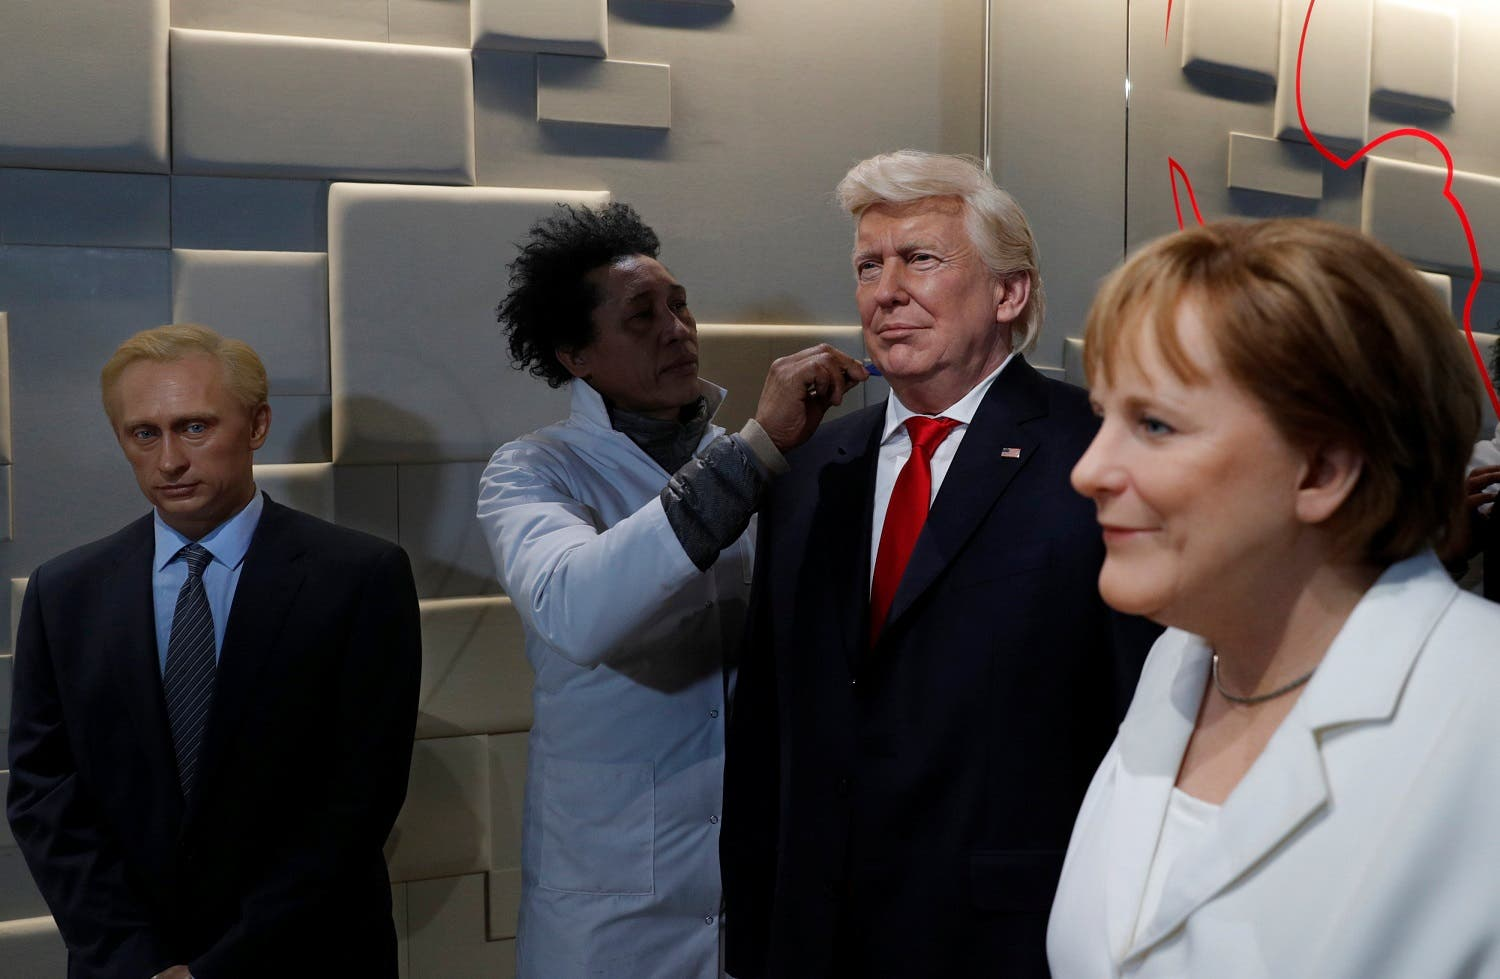 An assistant finishes the detail on a Donald Trump wax work dummy at a Paris museum (Photo: Reuters)